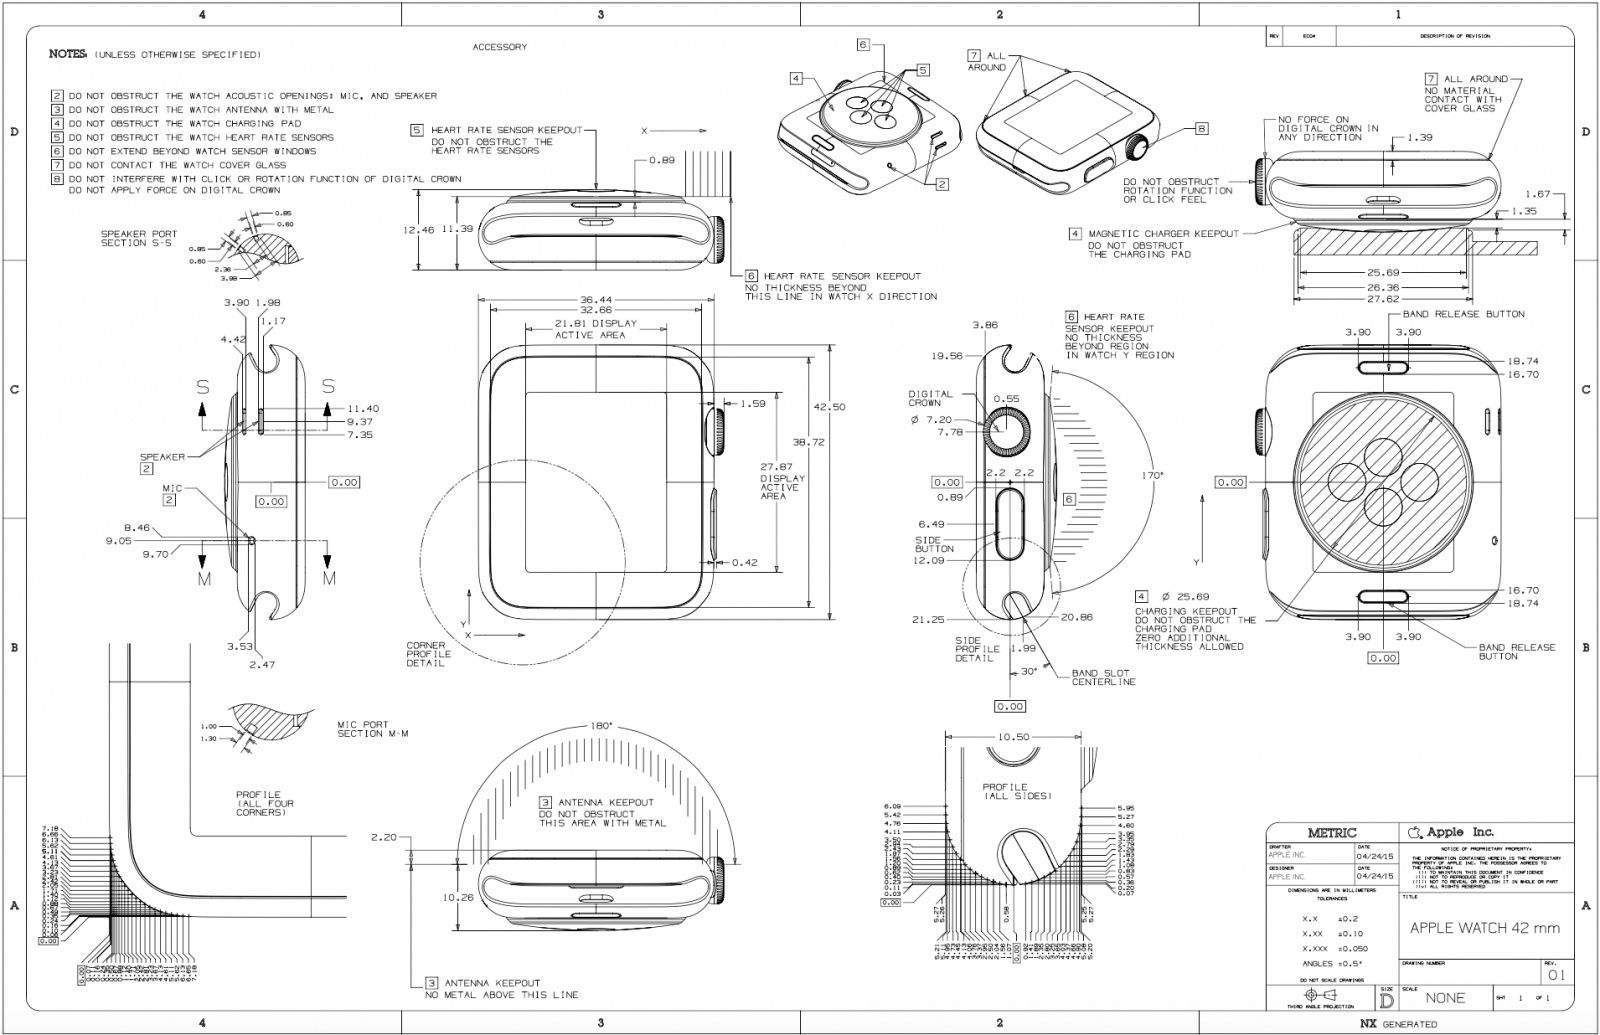 Schematics In Series Wiring Diagram Design Nerds Will Love This Beautiful Apple Watch Schematic Click For The Full Sized Version